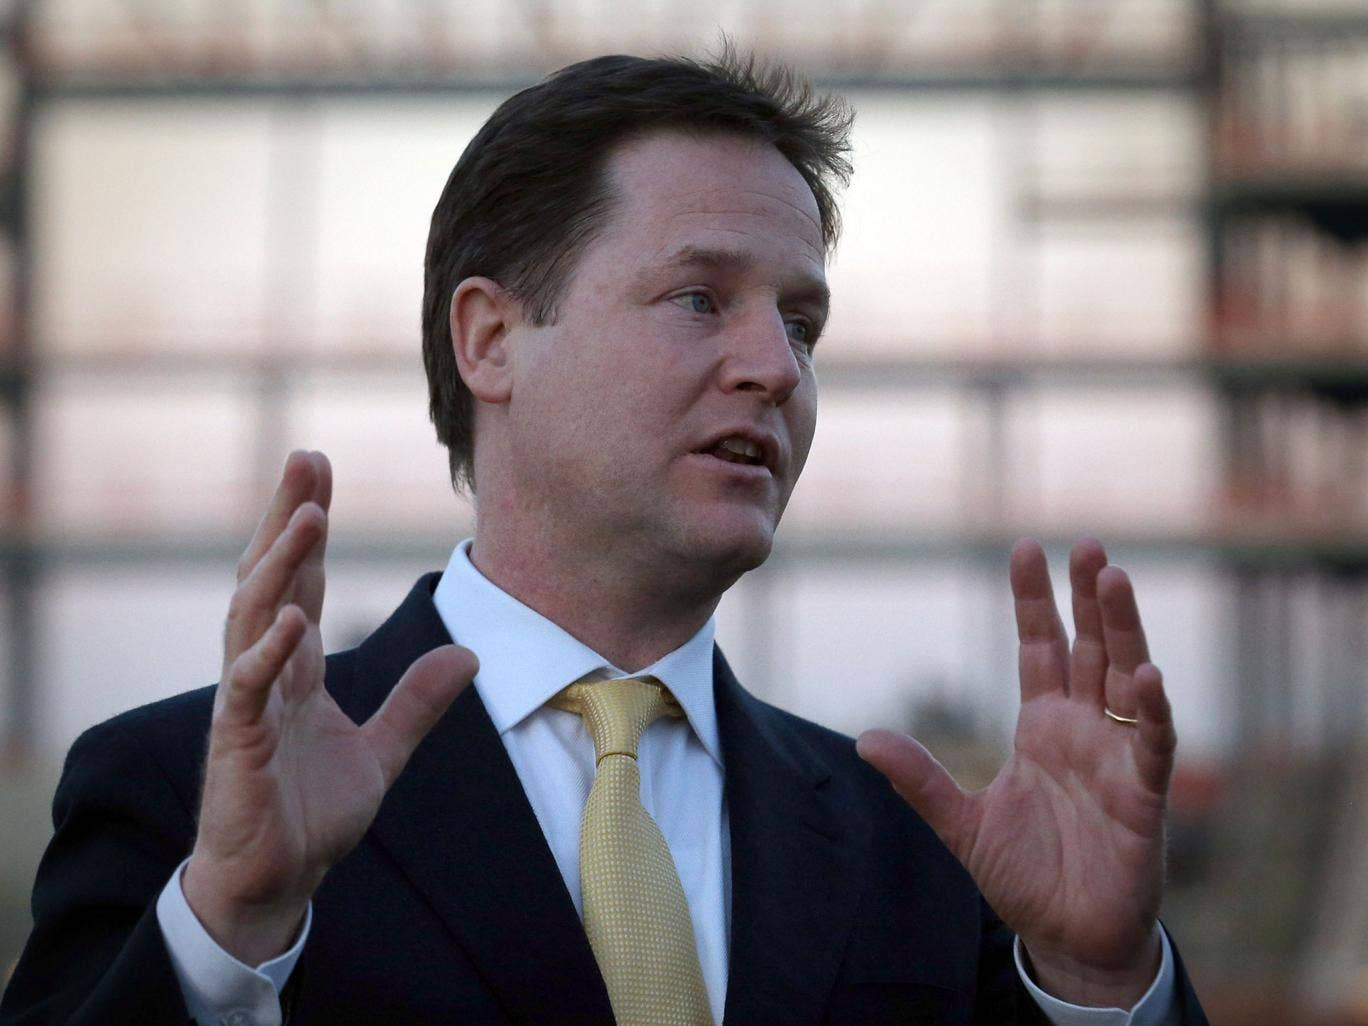 Nick Clegg accused the Conservative Party of 'endless navel-gazing'